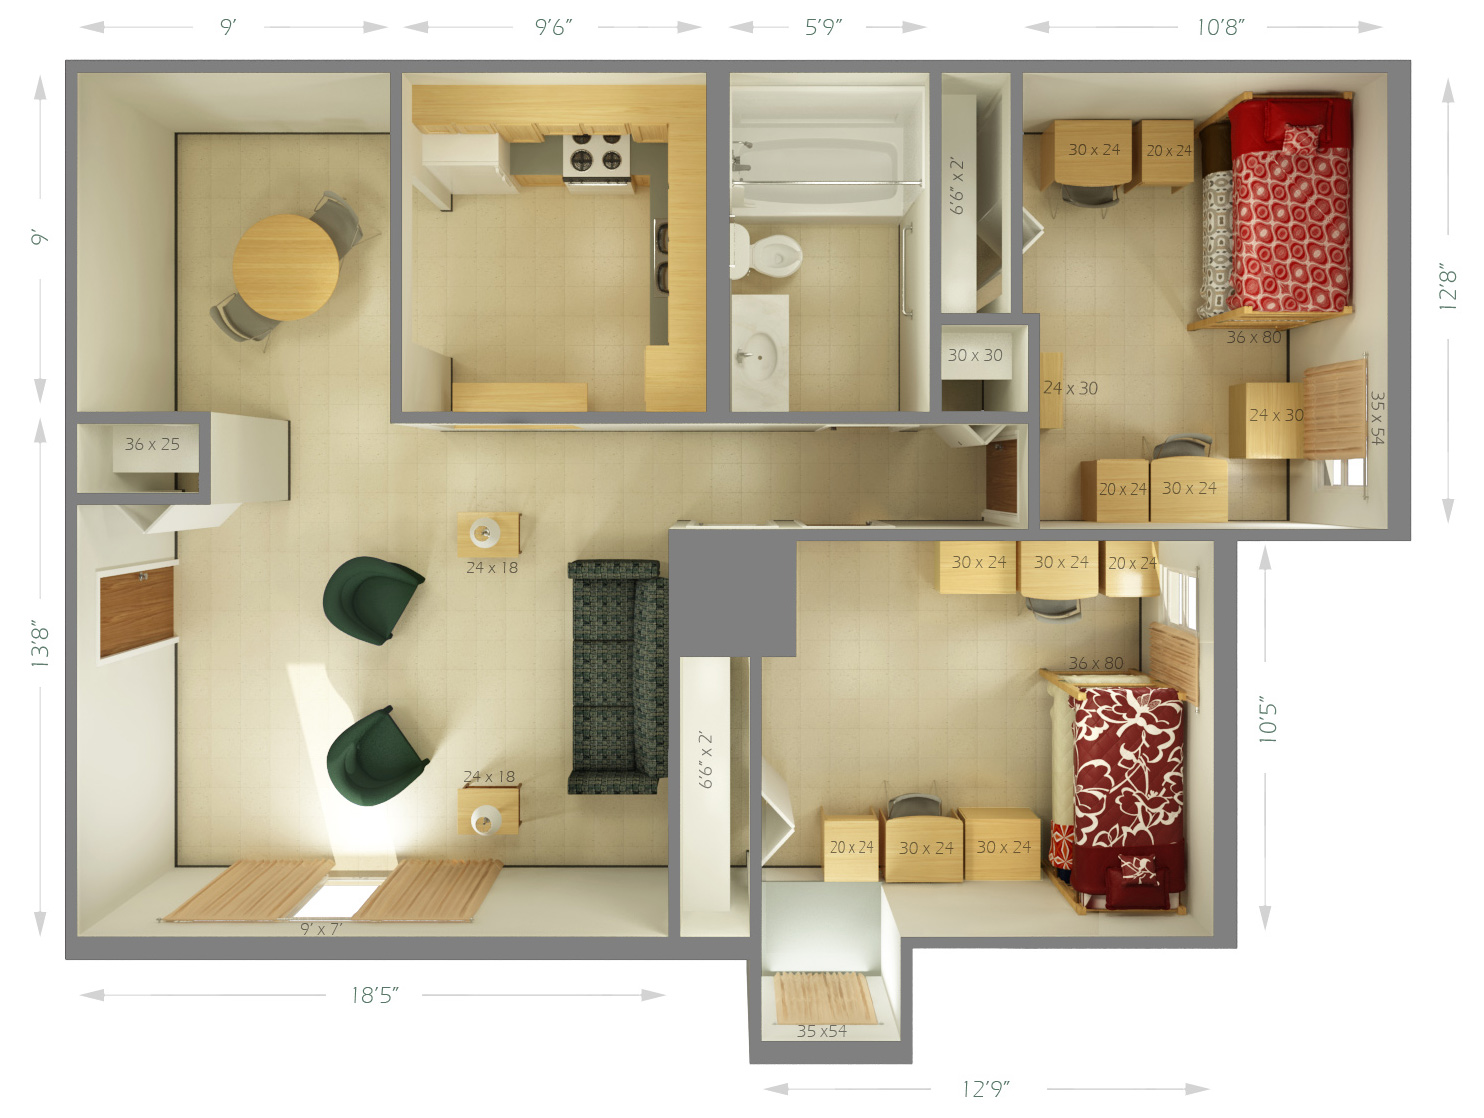 University Housing Cougar Village Room Dimensions Siue